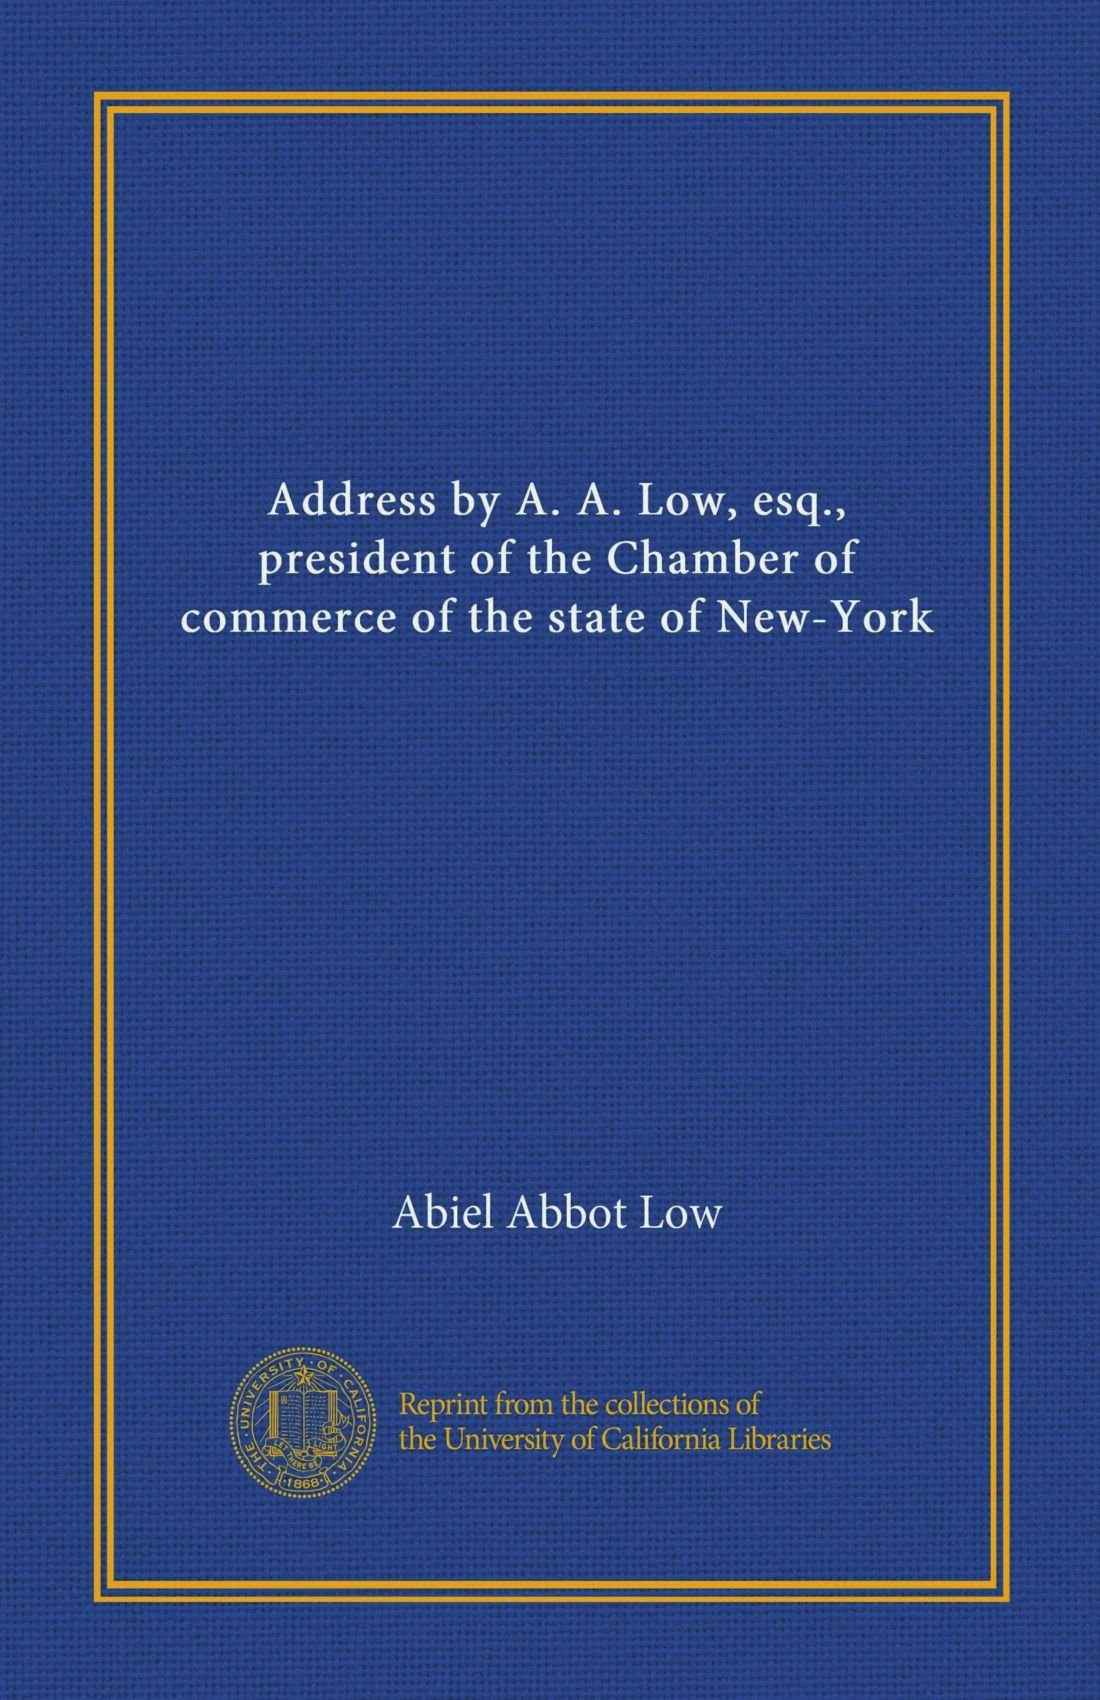 Address by A. A. Low, esq., president of the Chamber of commerce of the state of New-York pdf